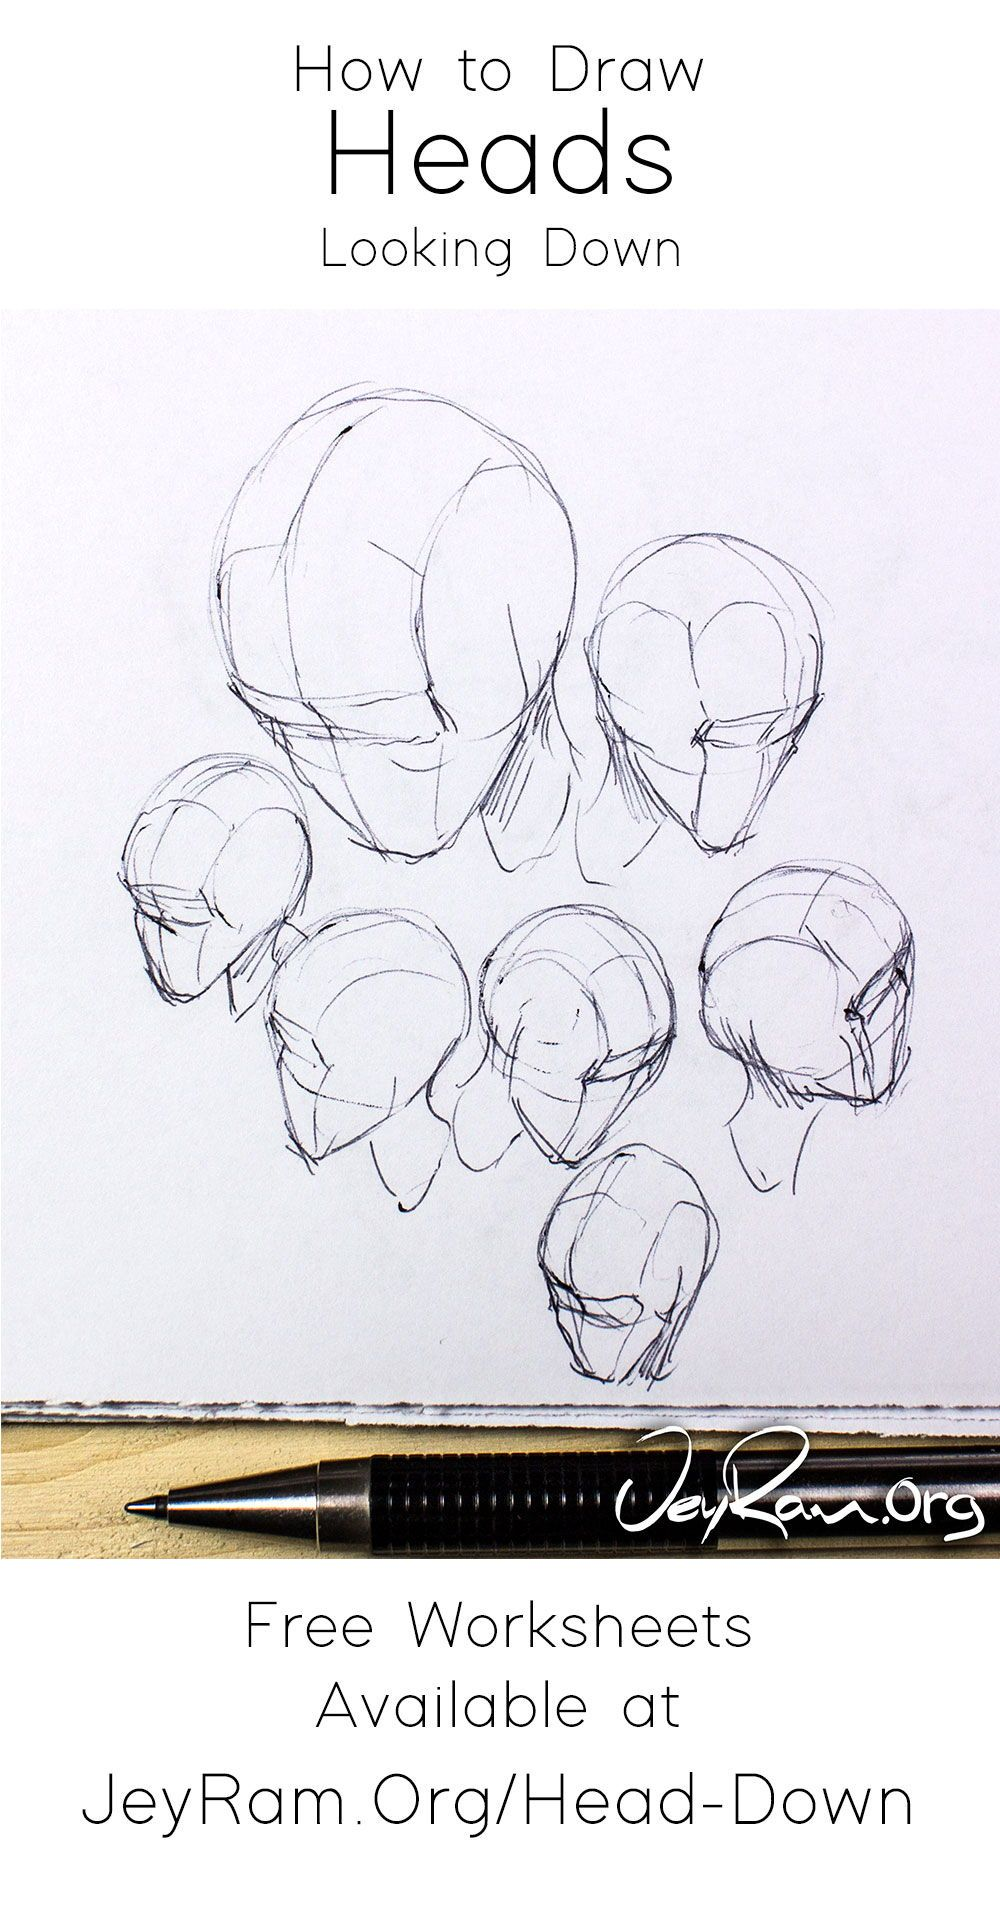 Head Looking Down Reference : looking, reference, Looking, Above, Drawings,, Creative, Drawing,, Drawing, Anime, Bodies